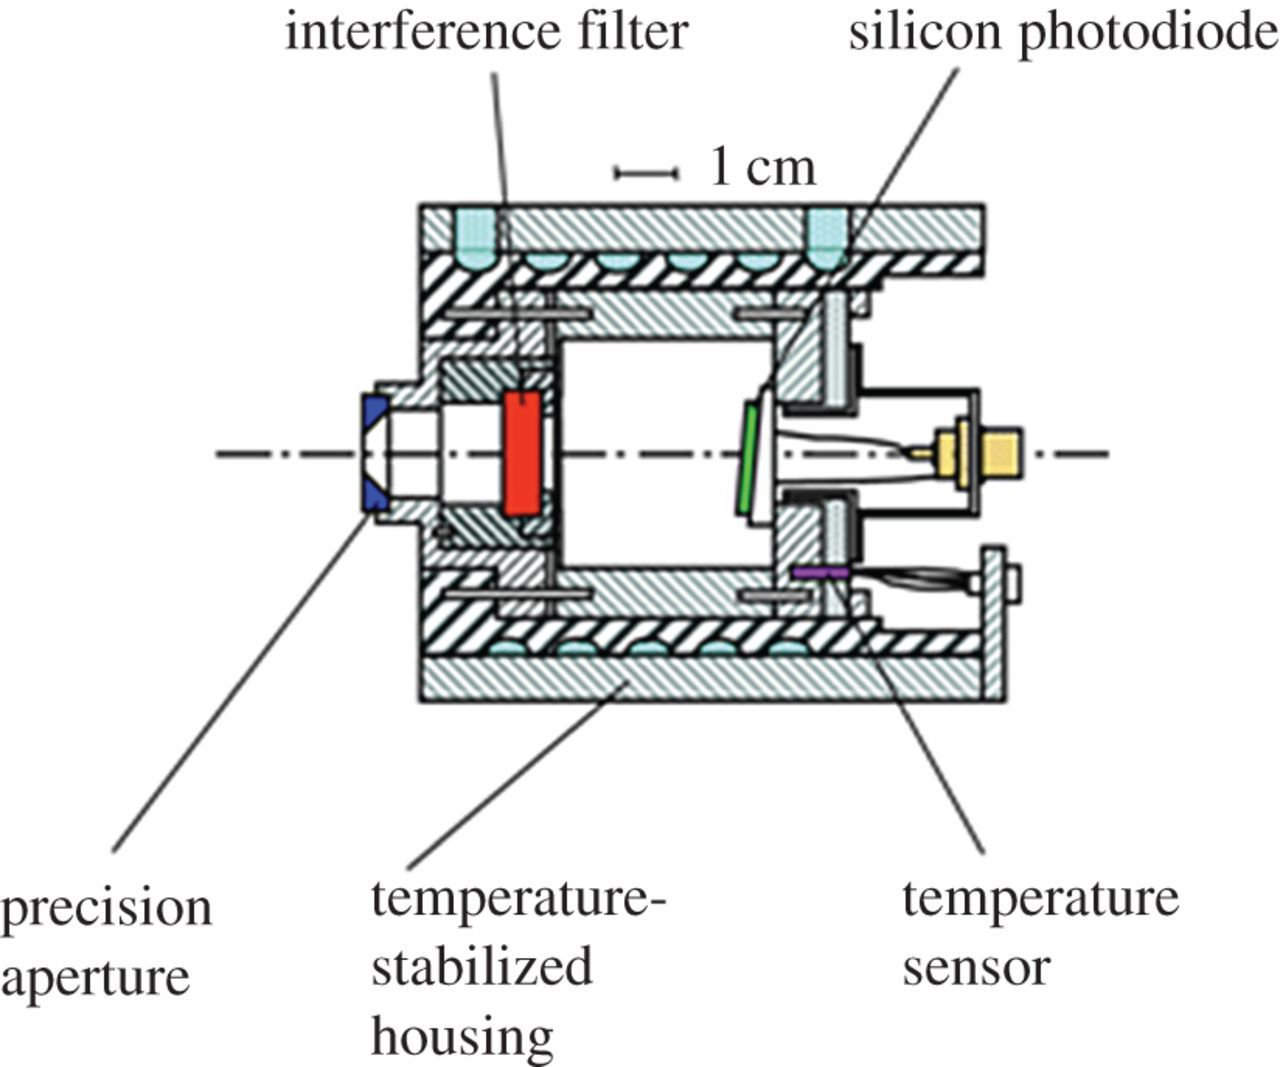 Thermodynamic temperature by primary radiometry